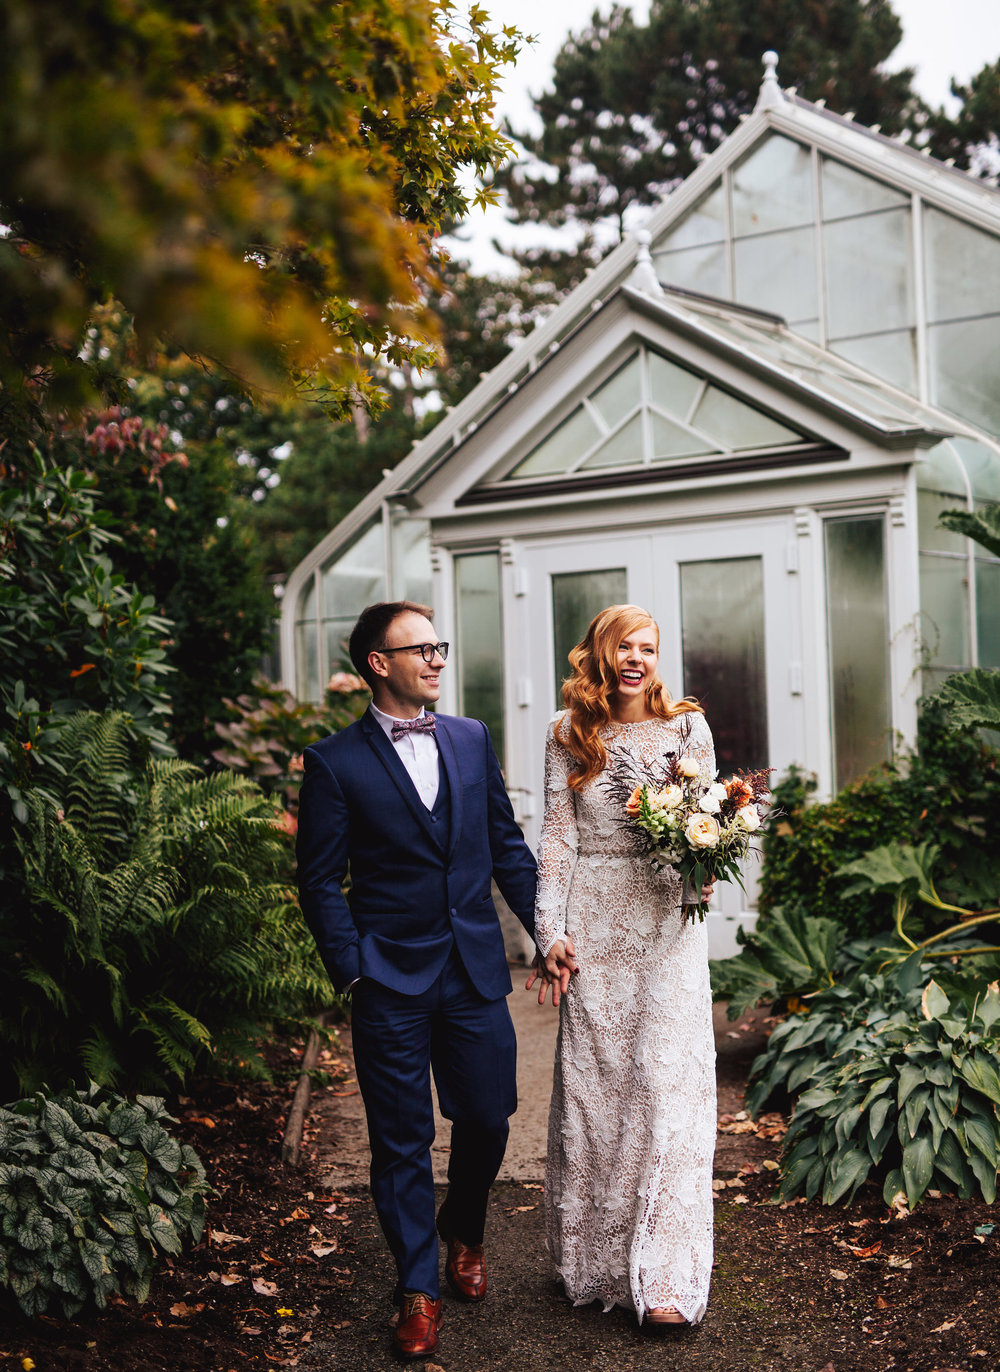 Candid affordable seattle wedding, seattle wedding photographer